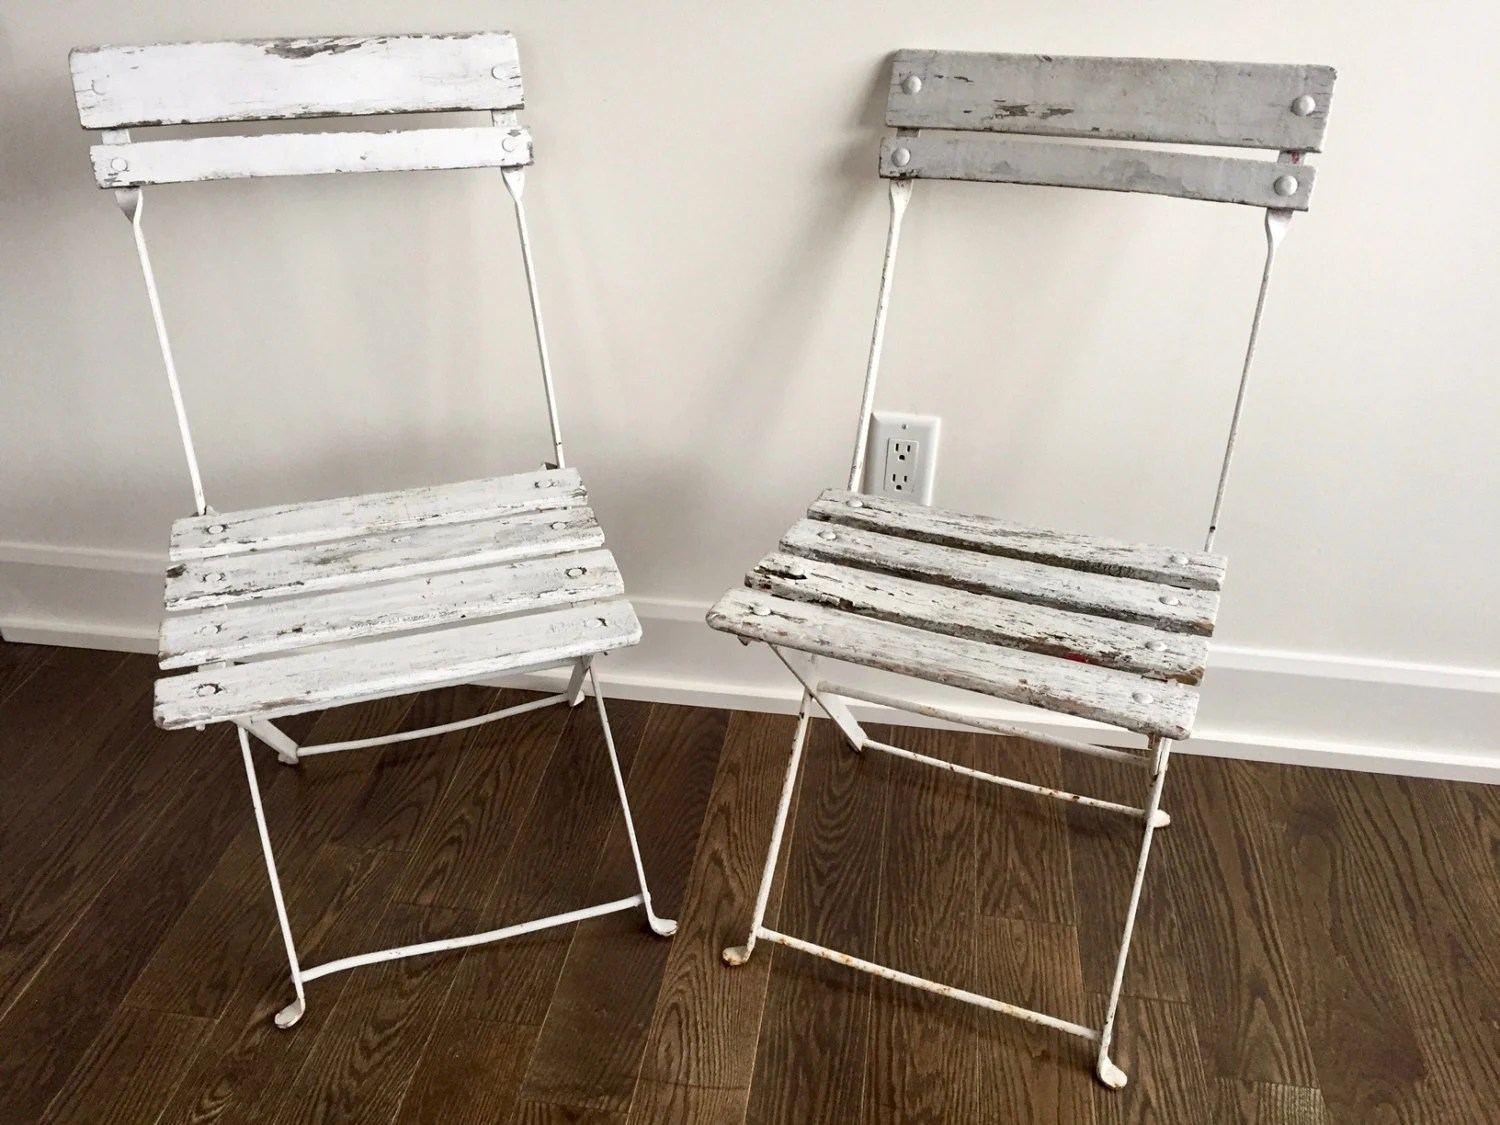 French Bistro Chair Vintage French Bistro Chair Cafe Folding Chair White Shabby